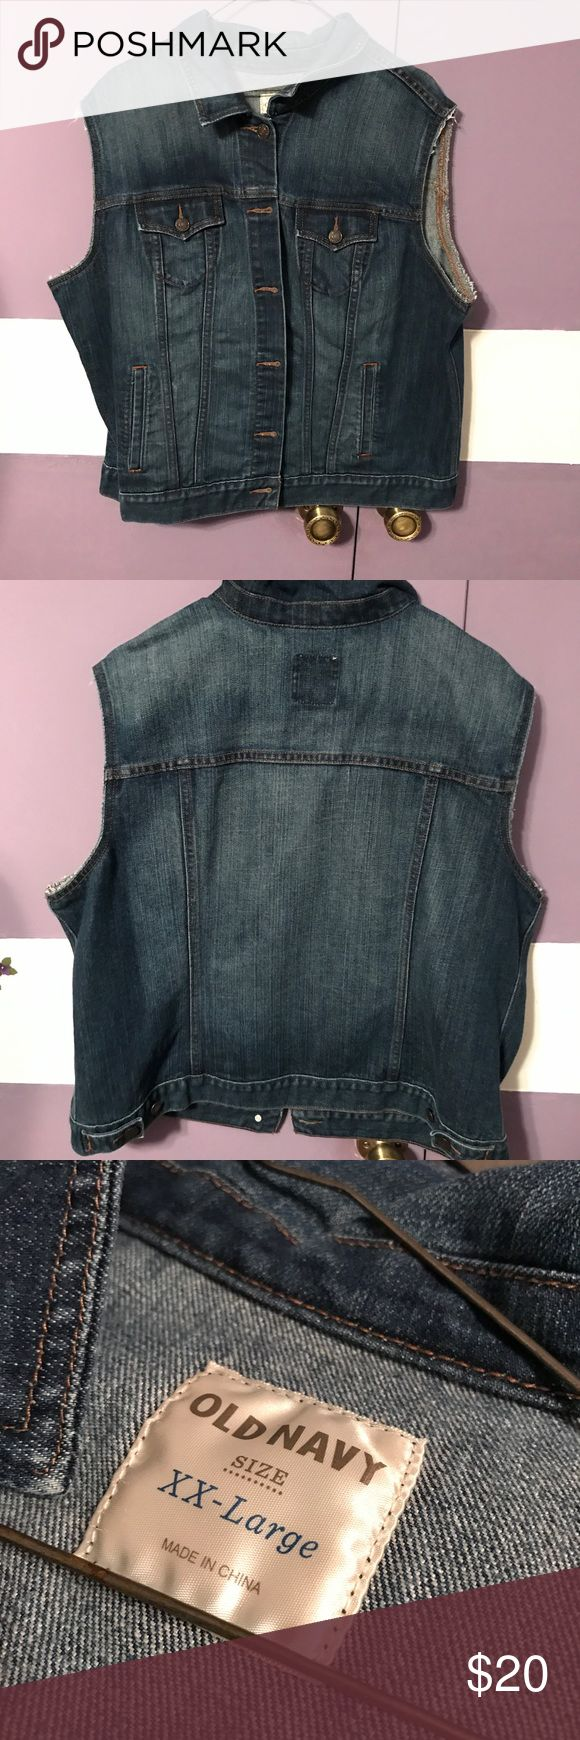 Old Navy Jean Jacket Vest Size is XXL. Has been worn several times. In great condition. Will consider offers, but no trades :) Old Navy Jackets & Coats Jean Jackets